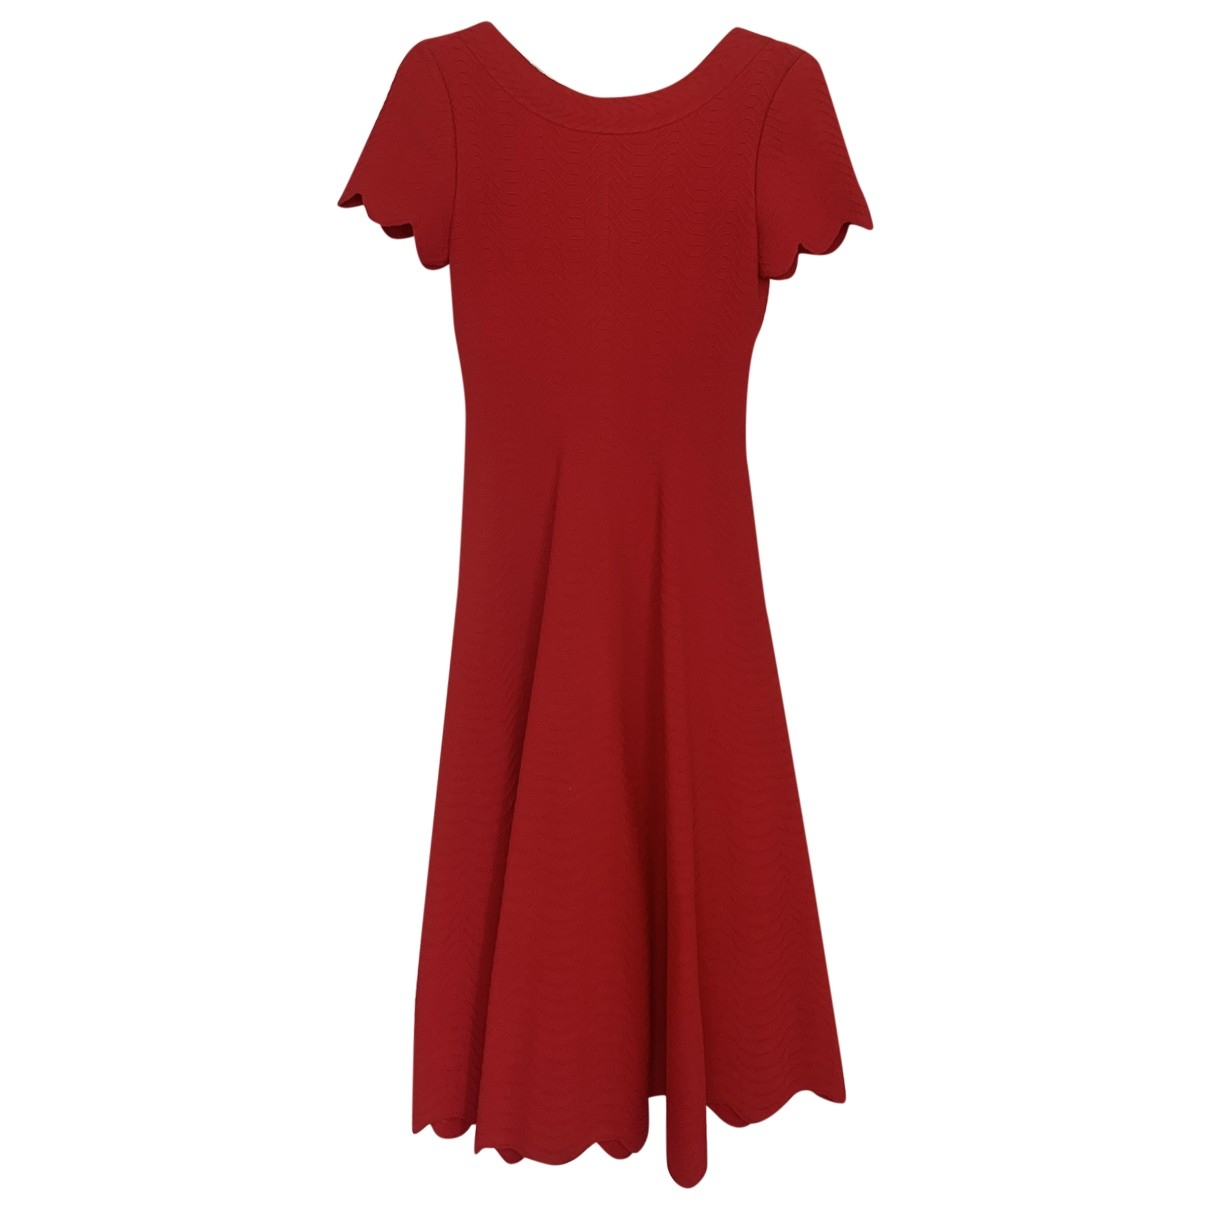 Alaïa \N Red dress for Women 38 FR